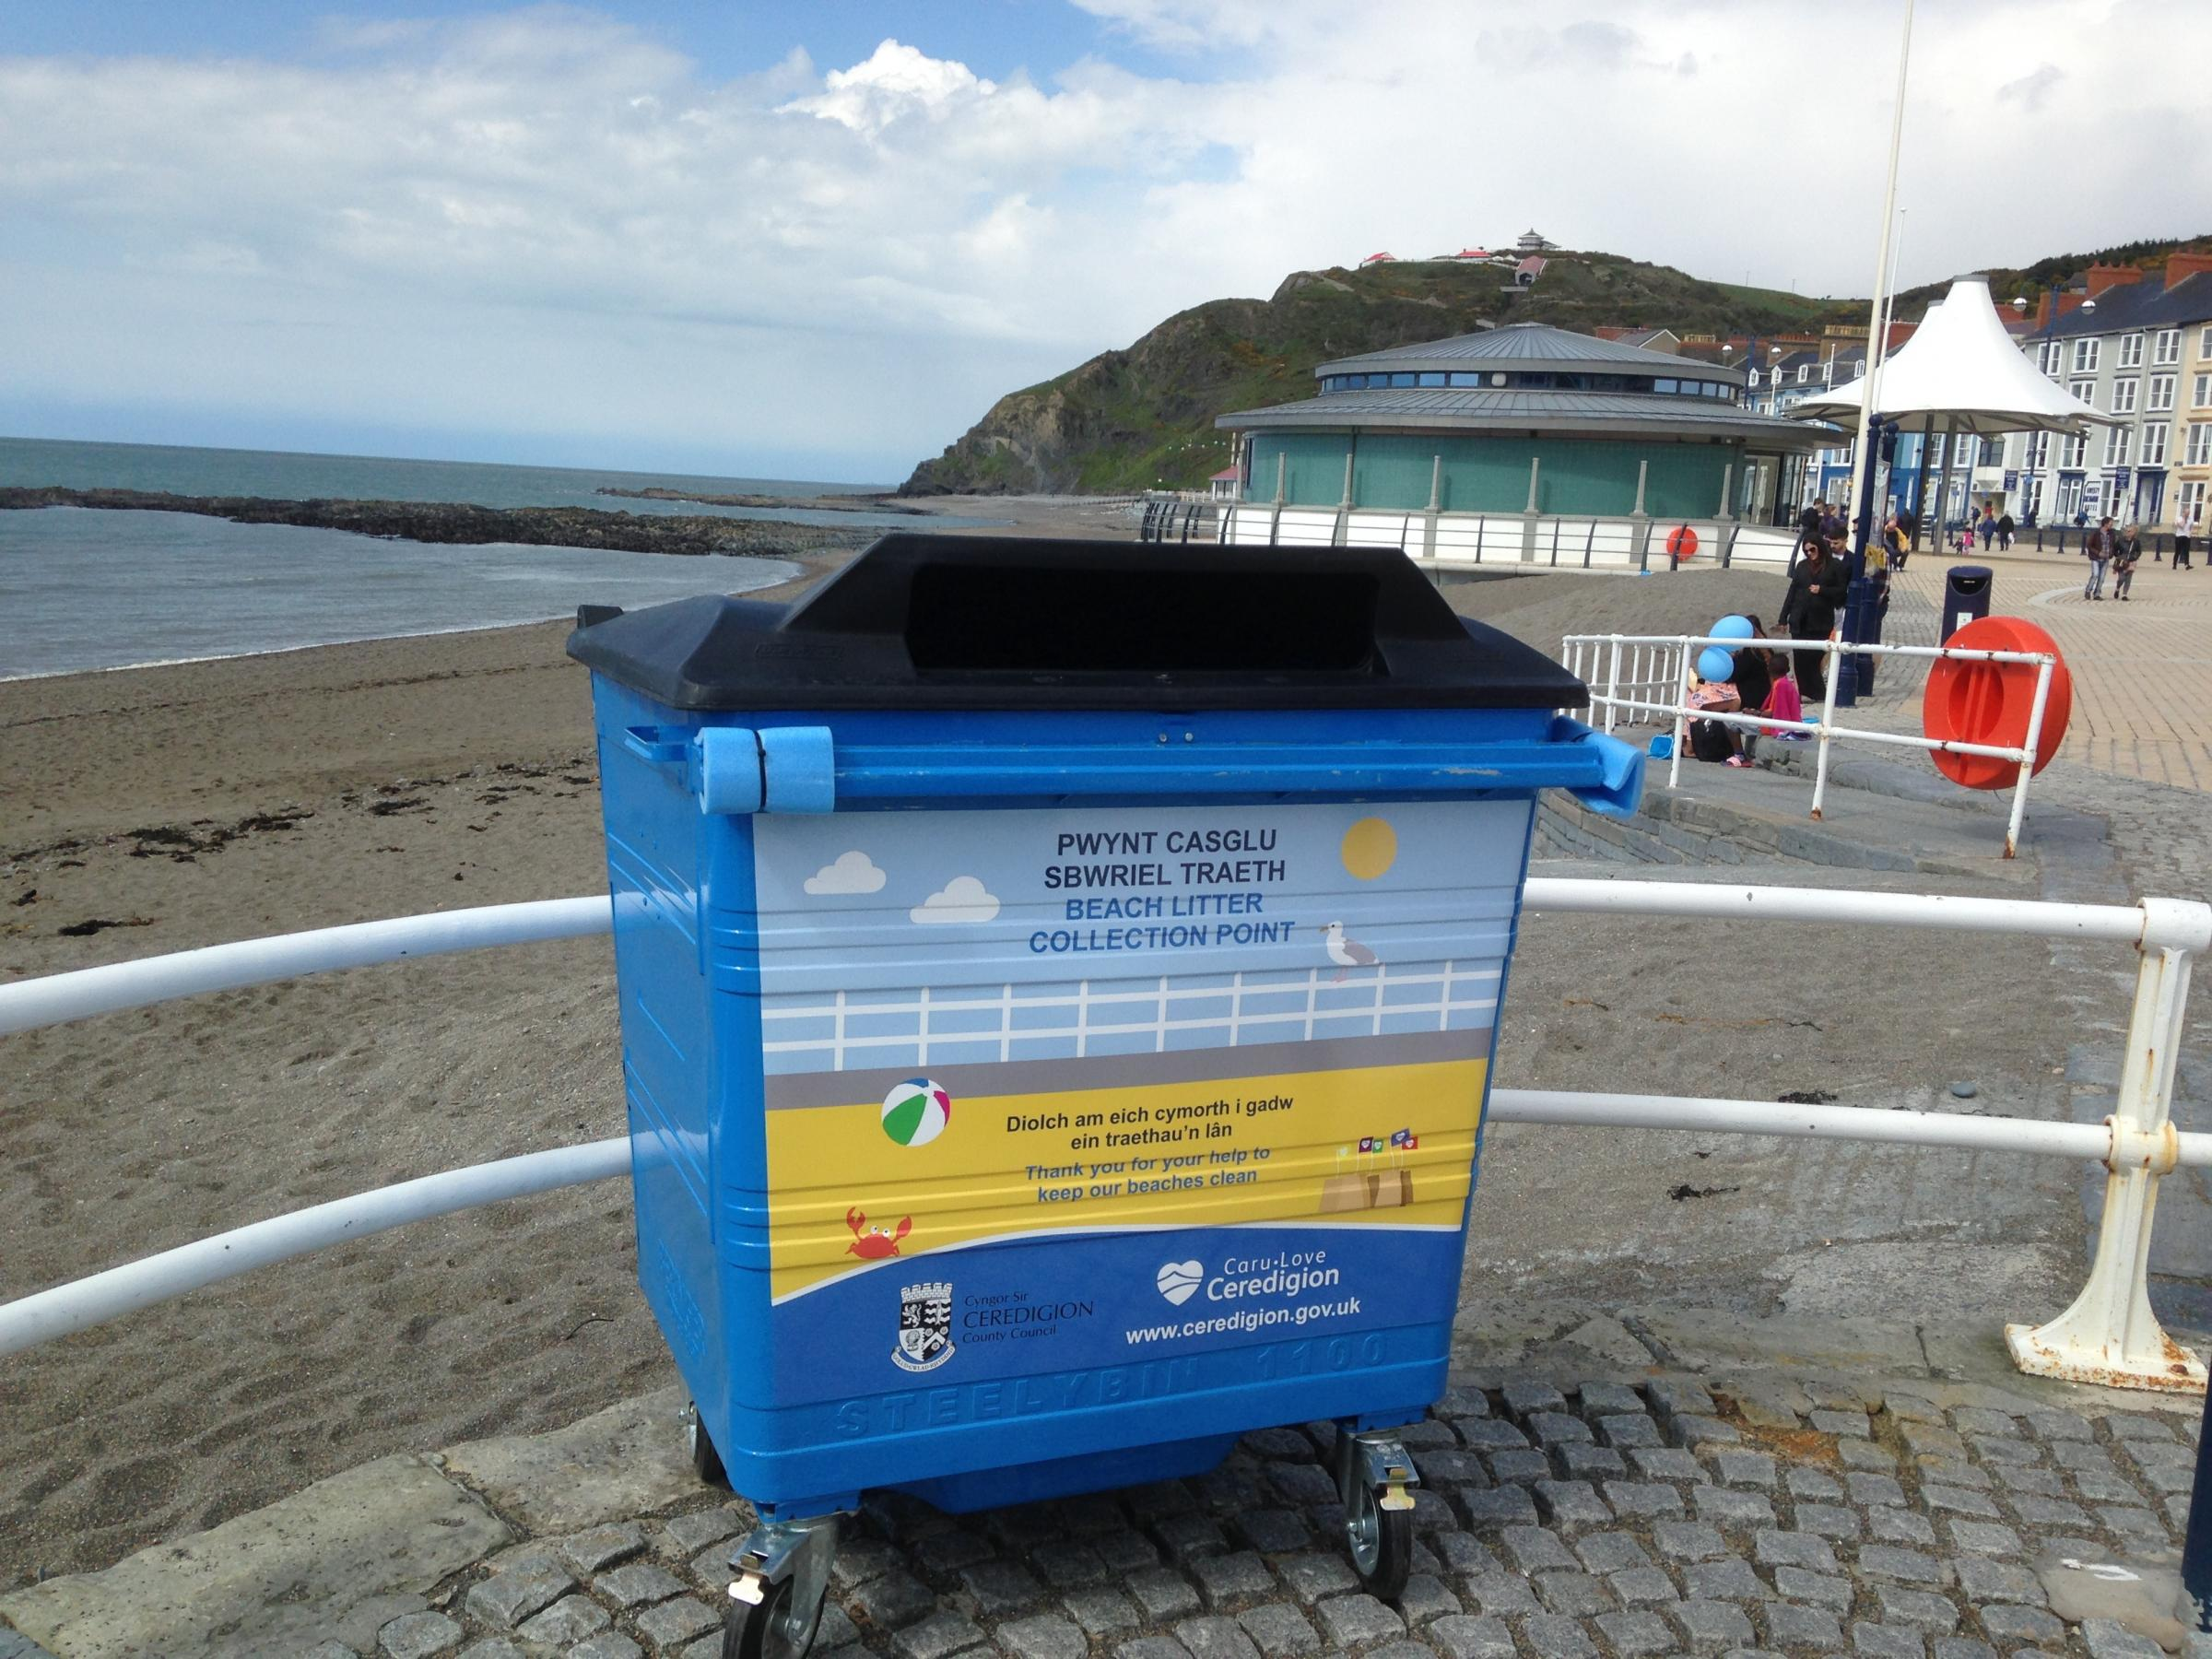 New litter bins will be sited at Ceredigion beaches